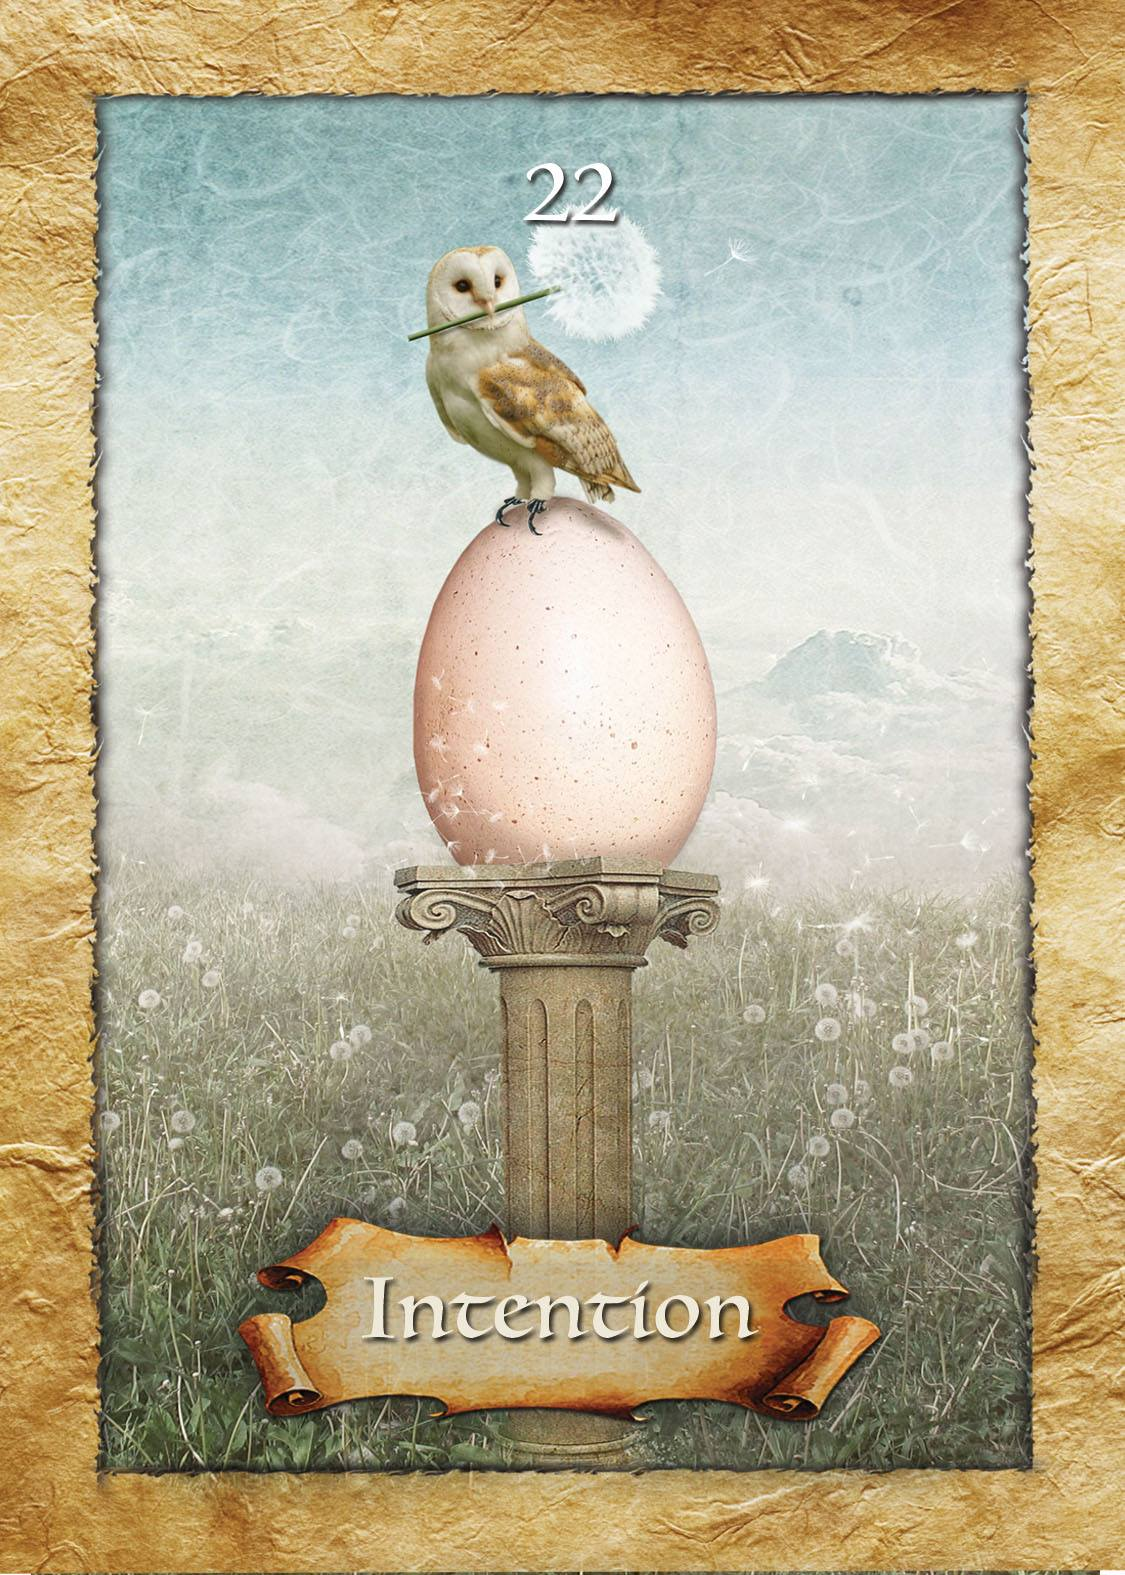 Set your intention today. Feel it, be it, know it, then send it out into the universe. Expect a miracle and it will come to pass in ways too numerous to count.